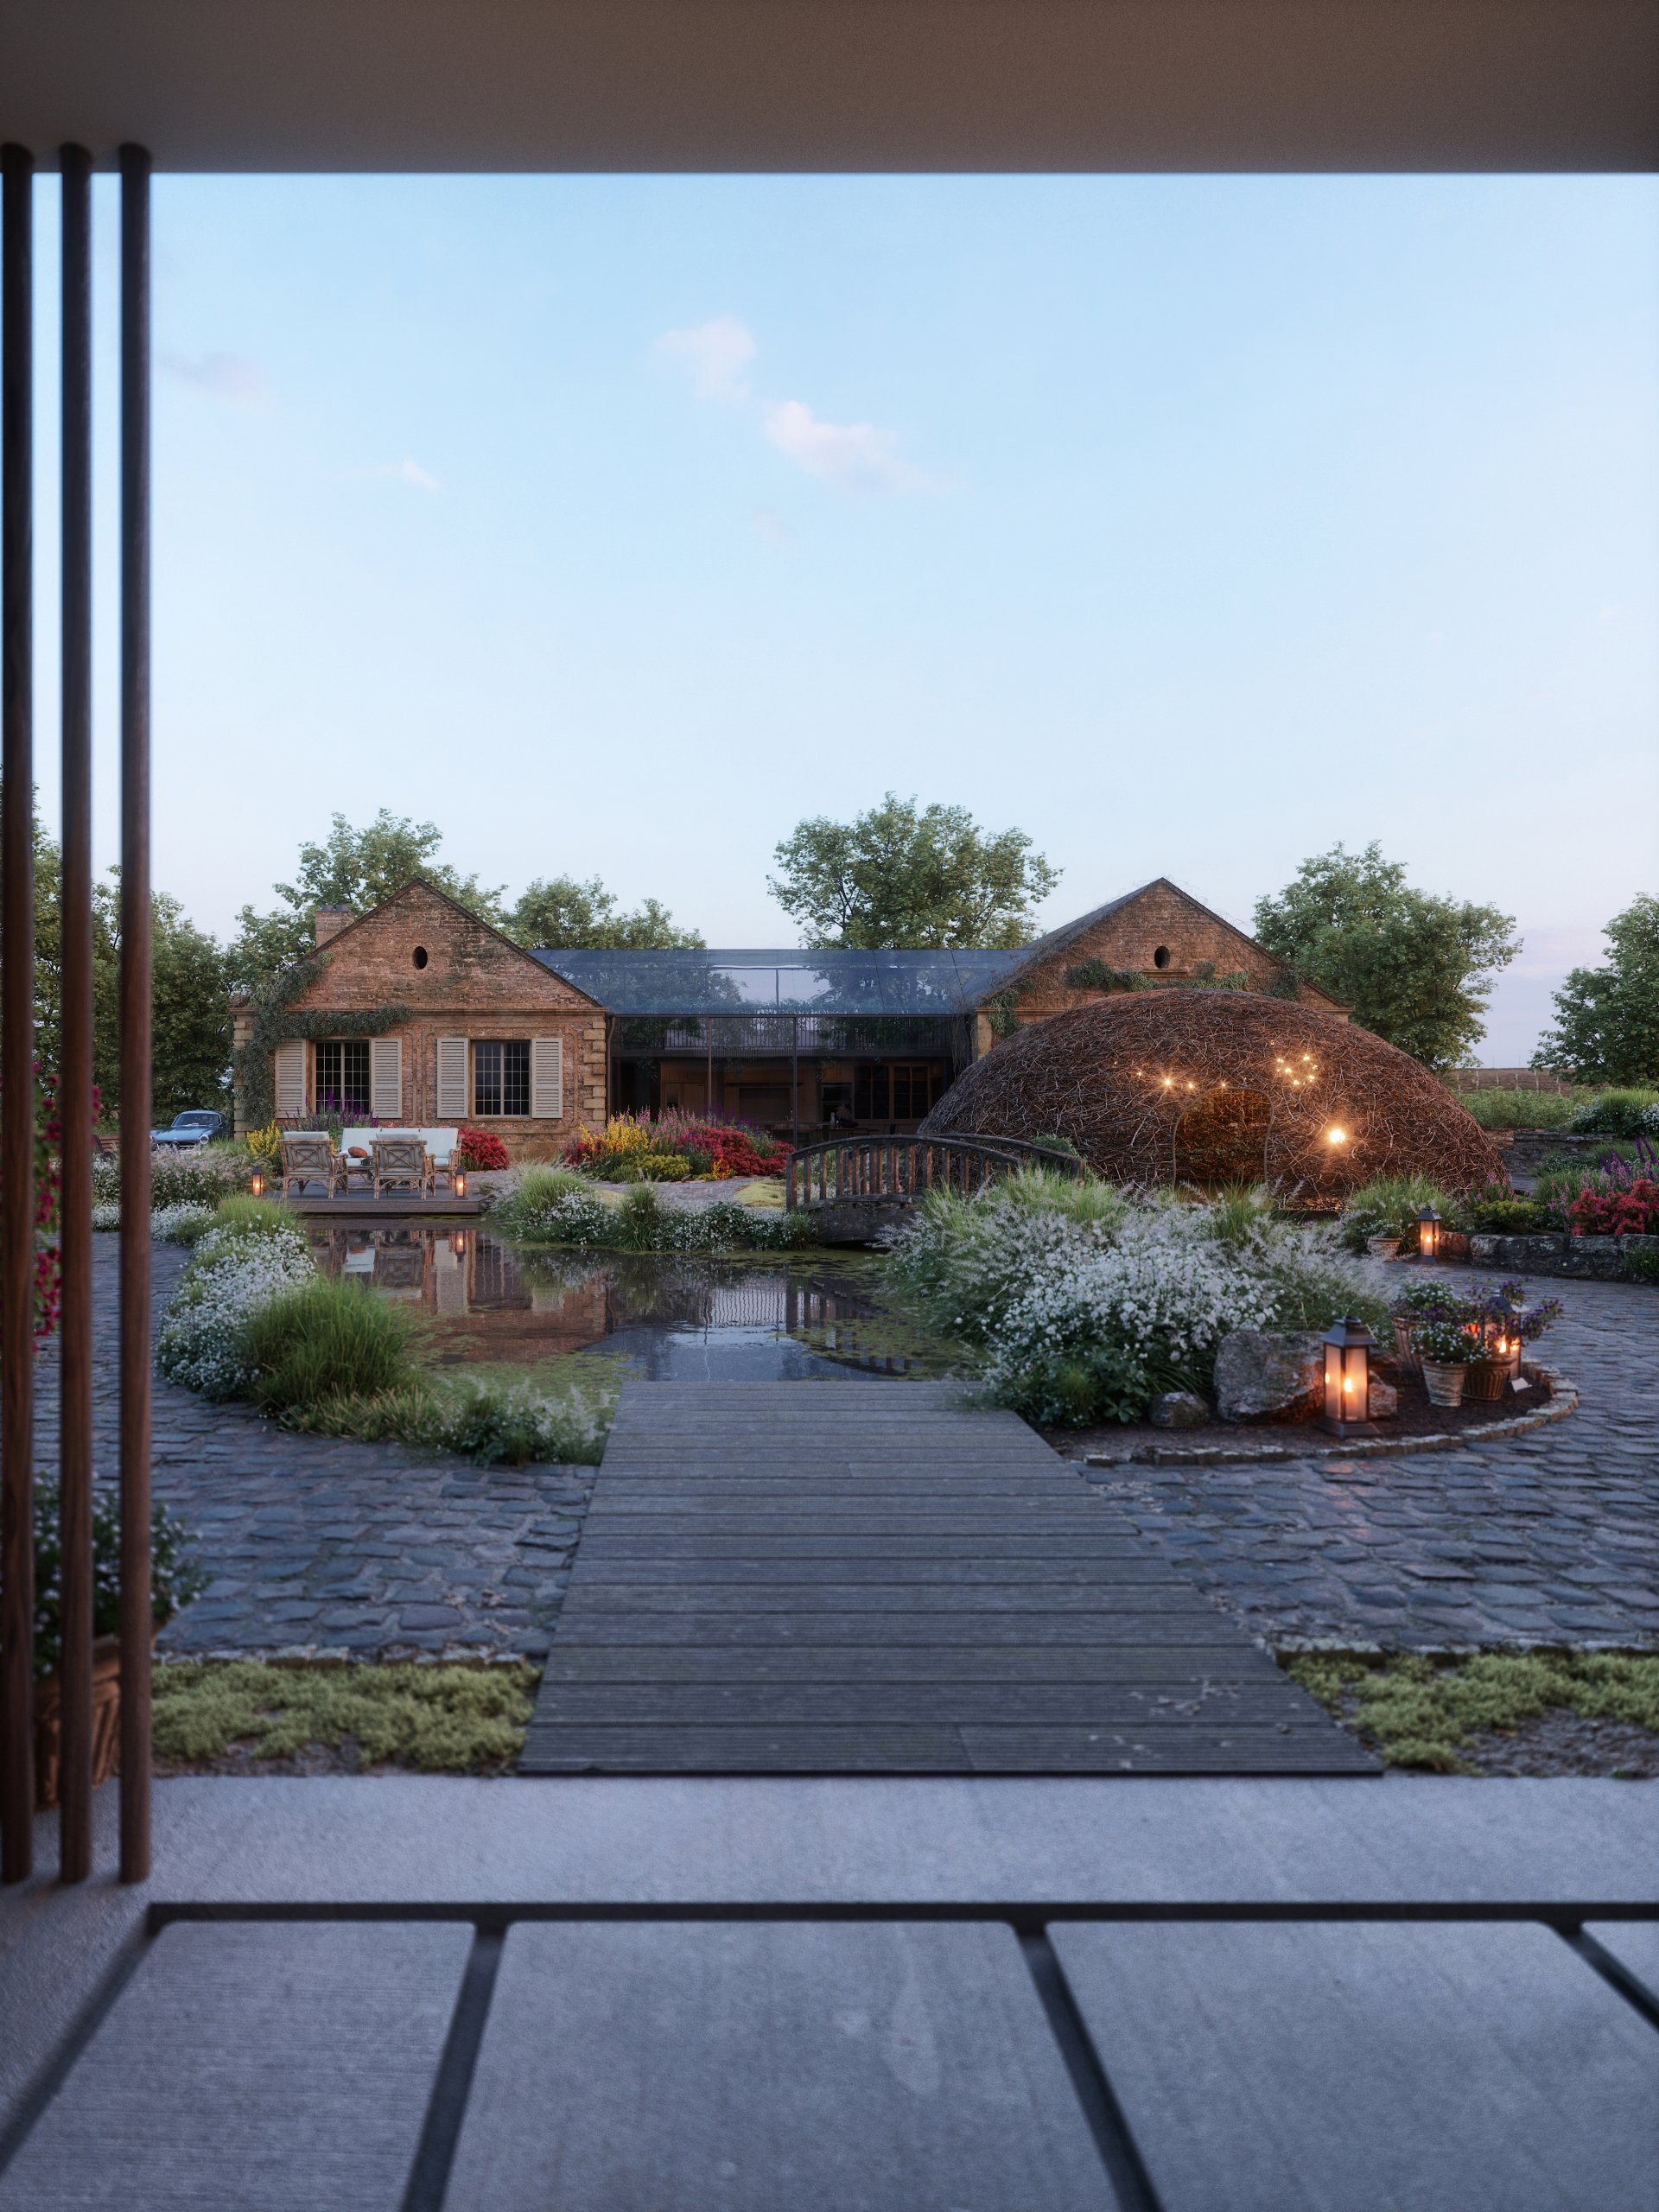 A Rural Residence Shown in 3D Architecture Renders